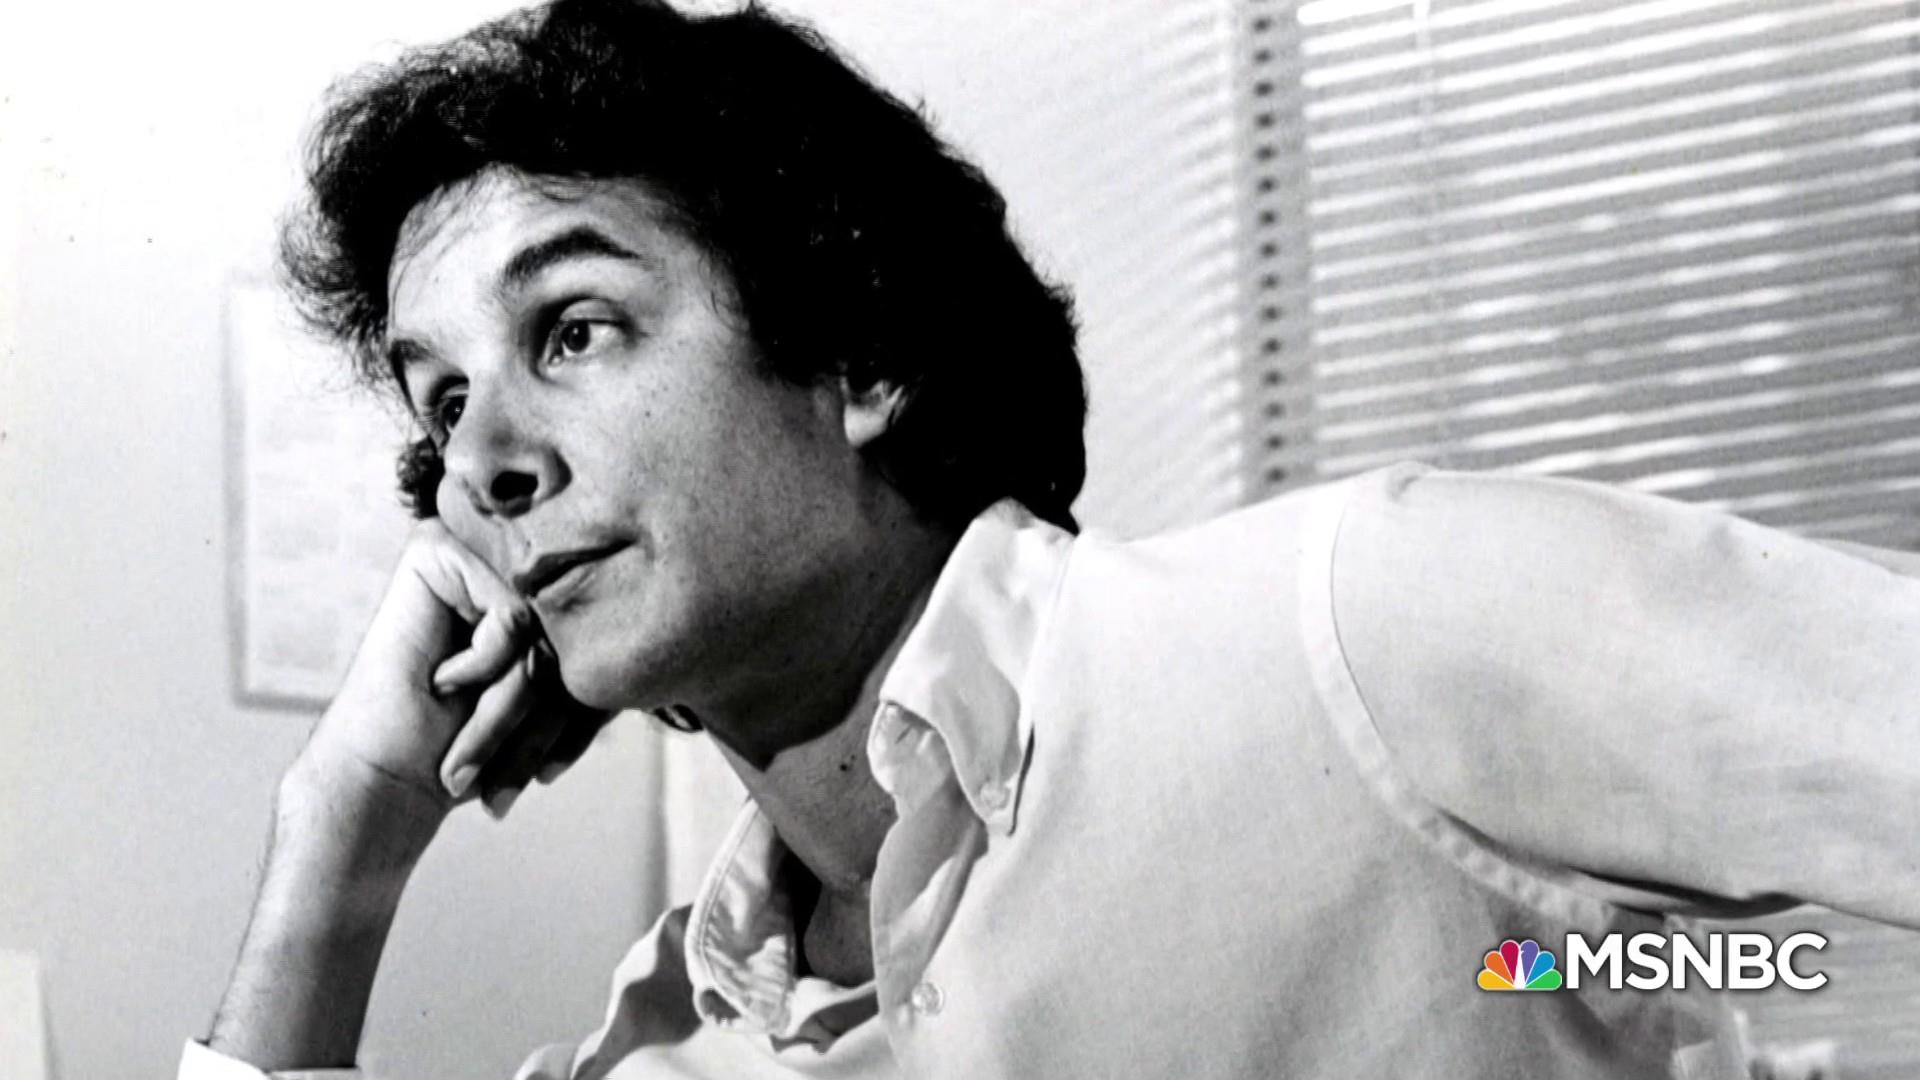 #BIGPICTURE: Honoring the life of Charles Krauthammer